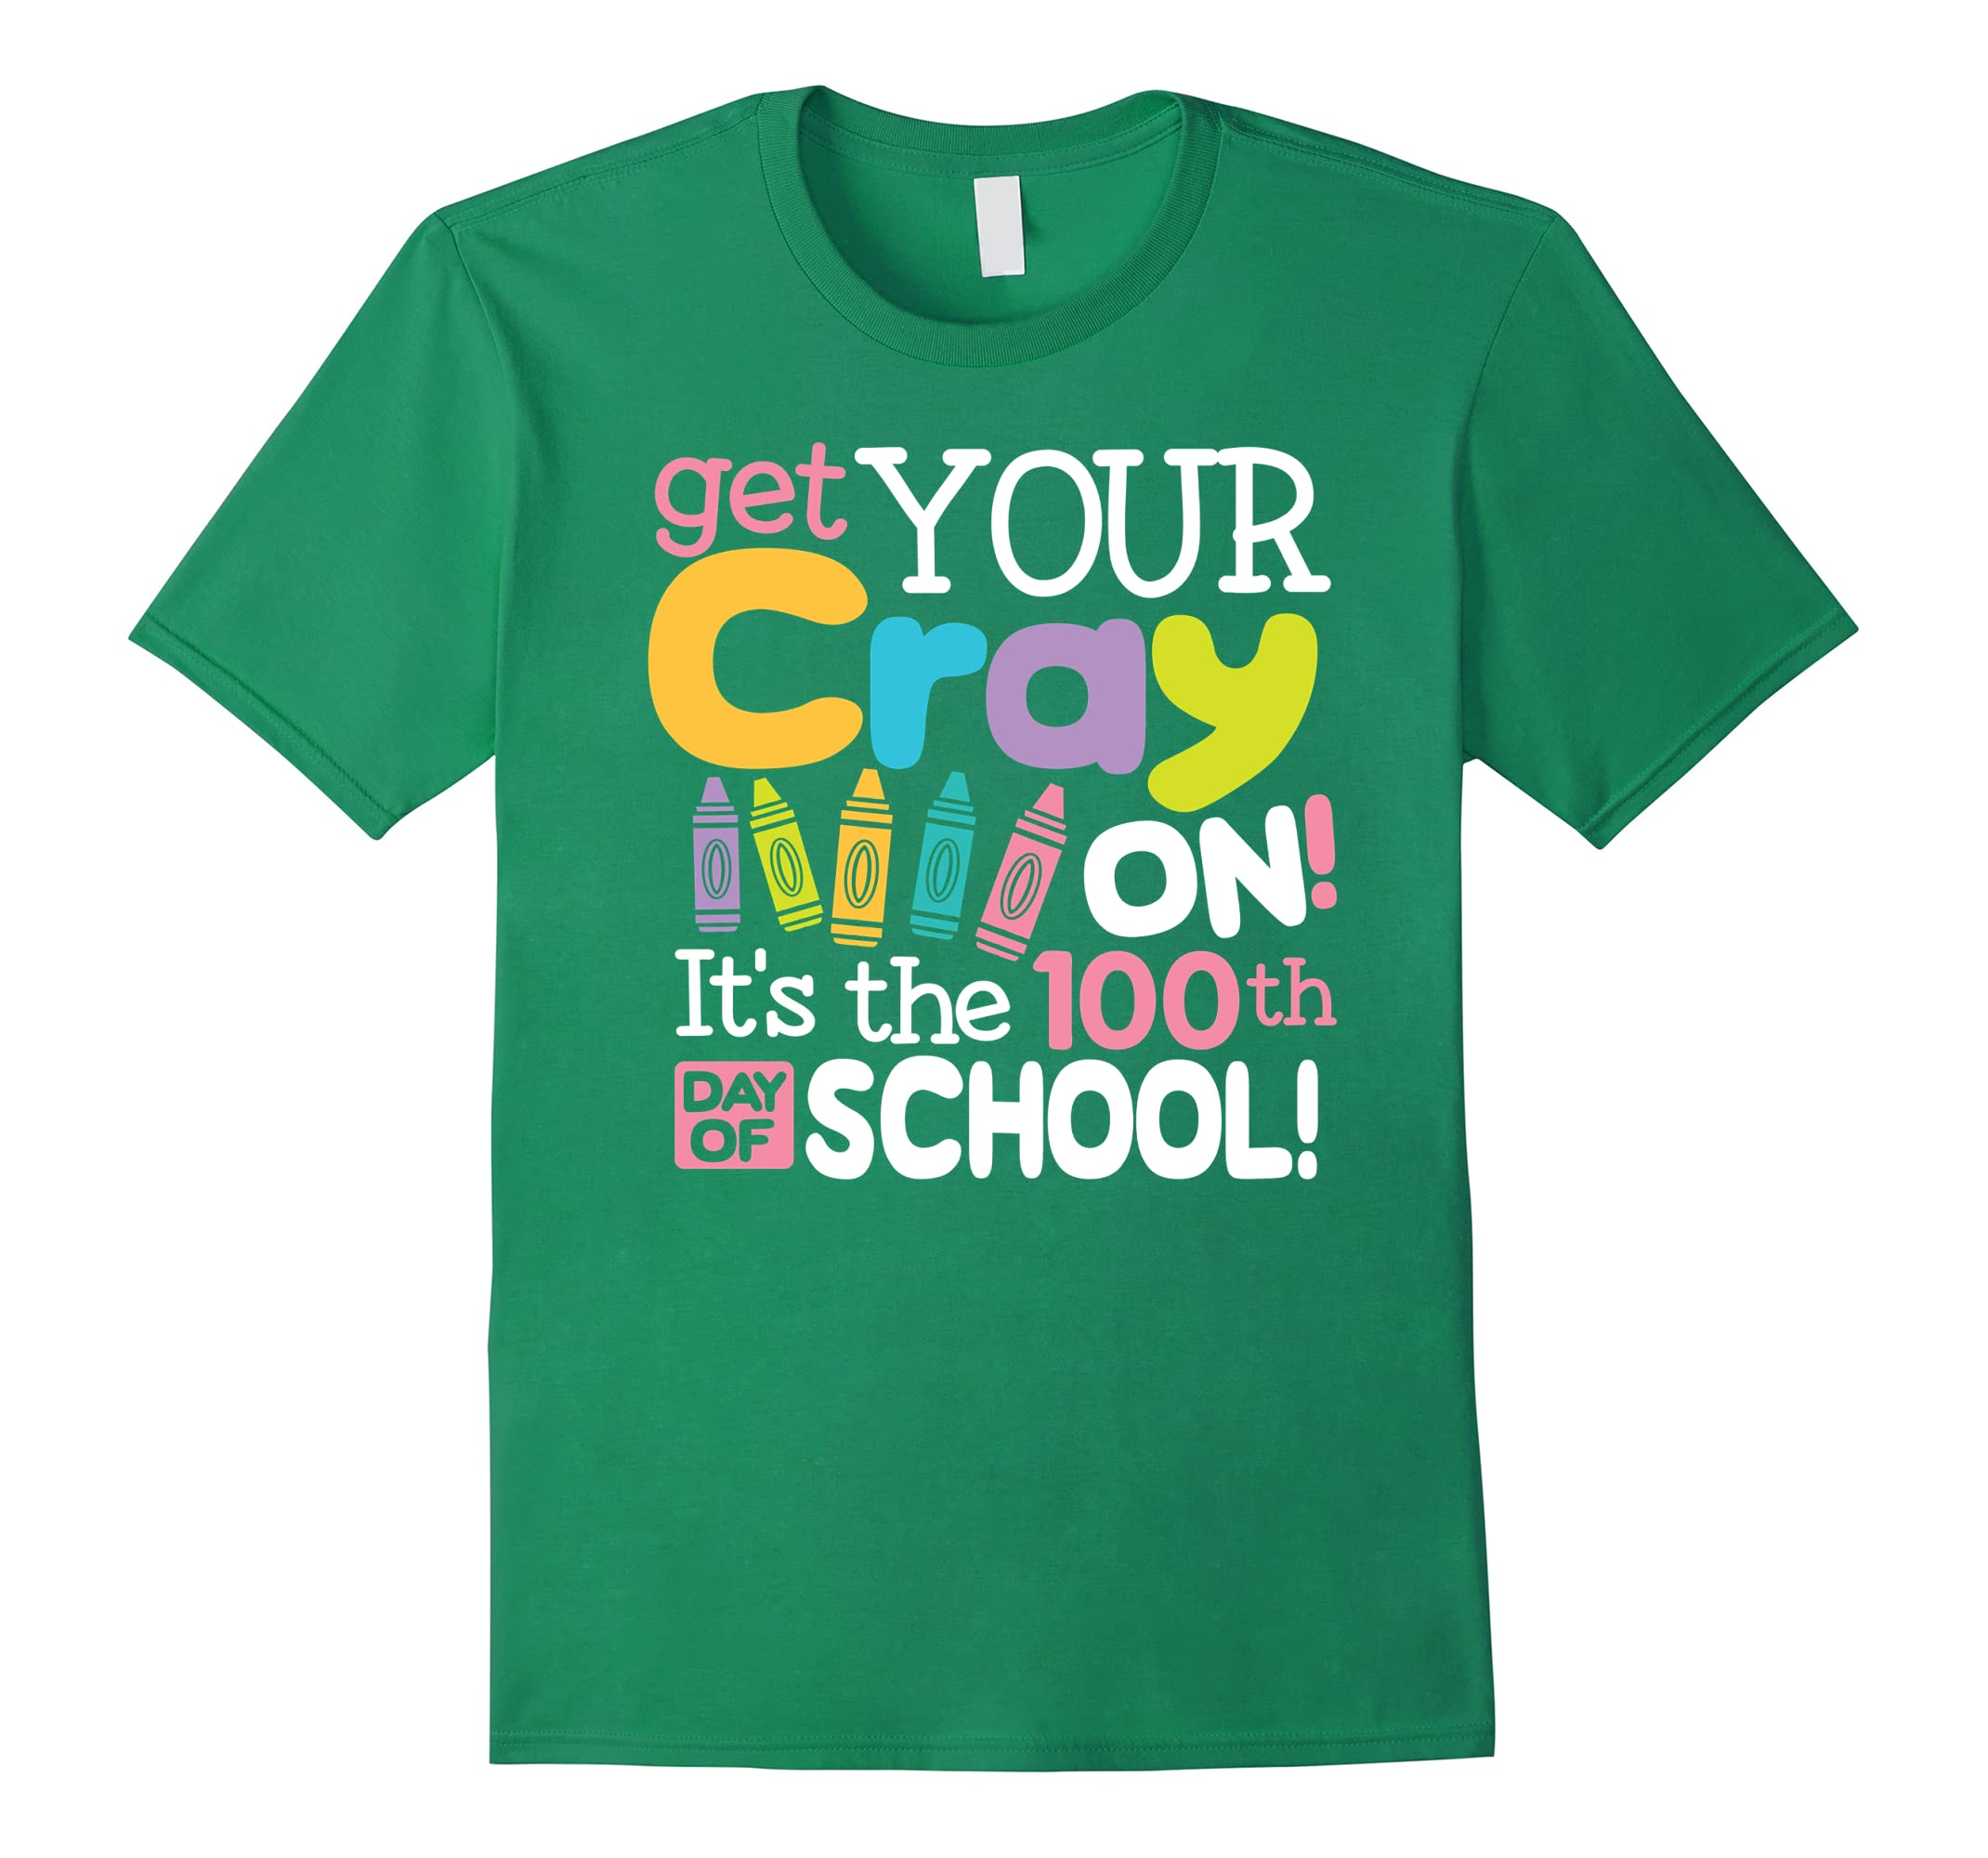 100th Day of School Tshirt Get Your Cray On Teacher Student-RT